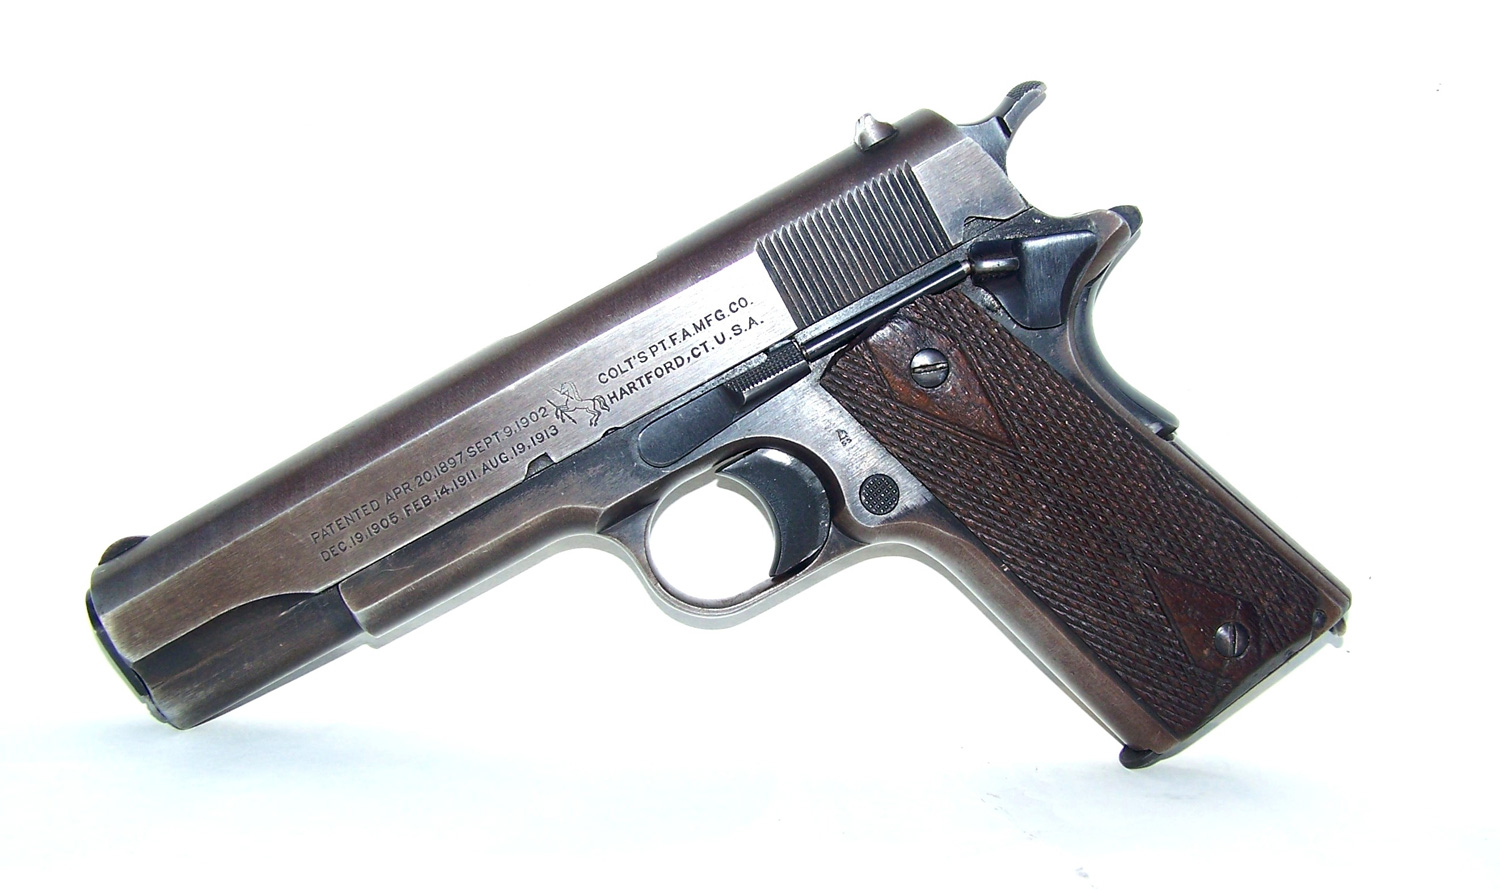 Colt 1911 pistol left side